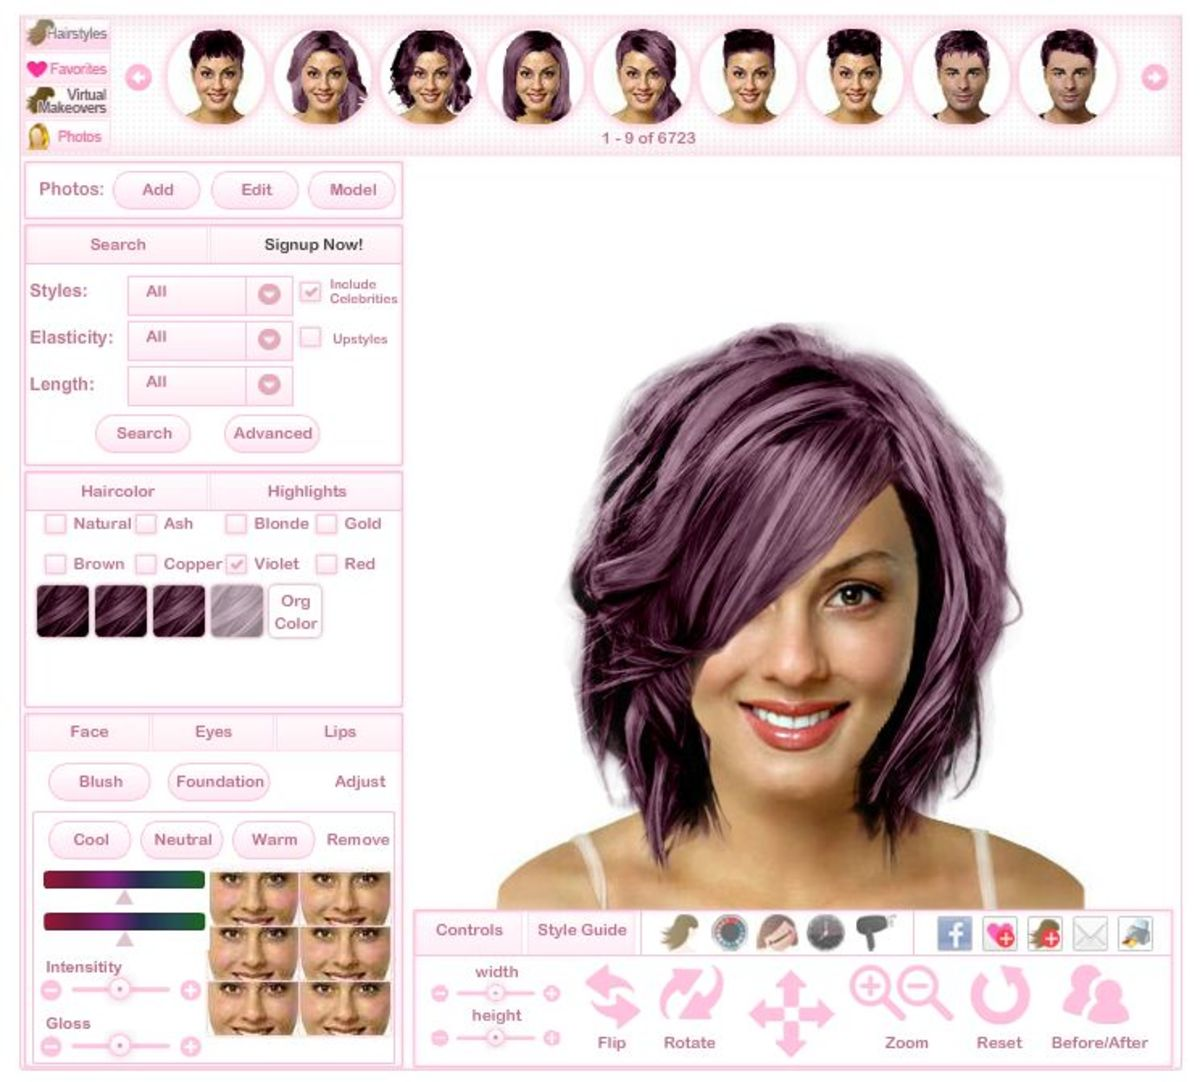 Virtual hairstyles makeover.